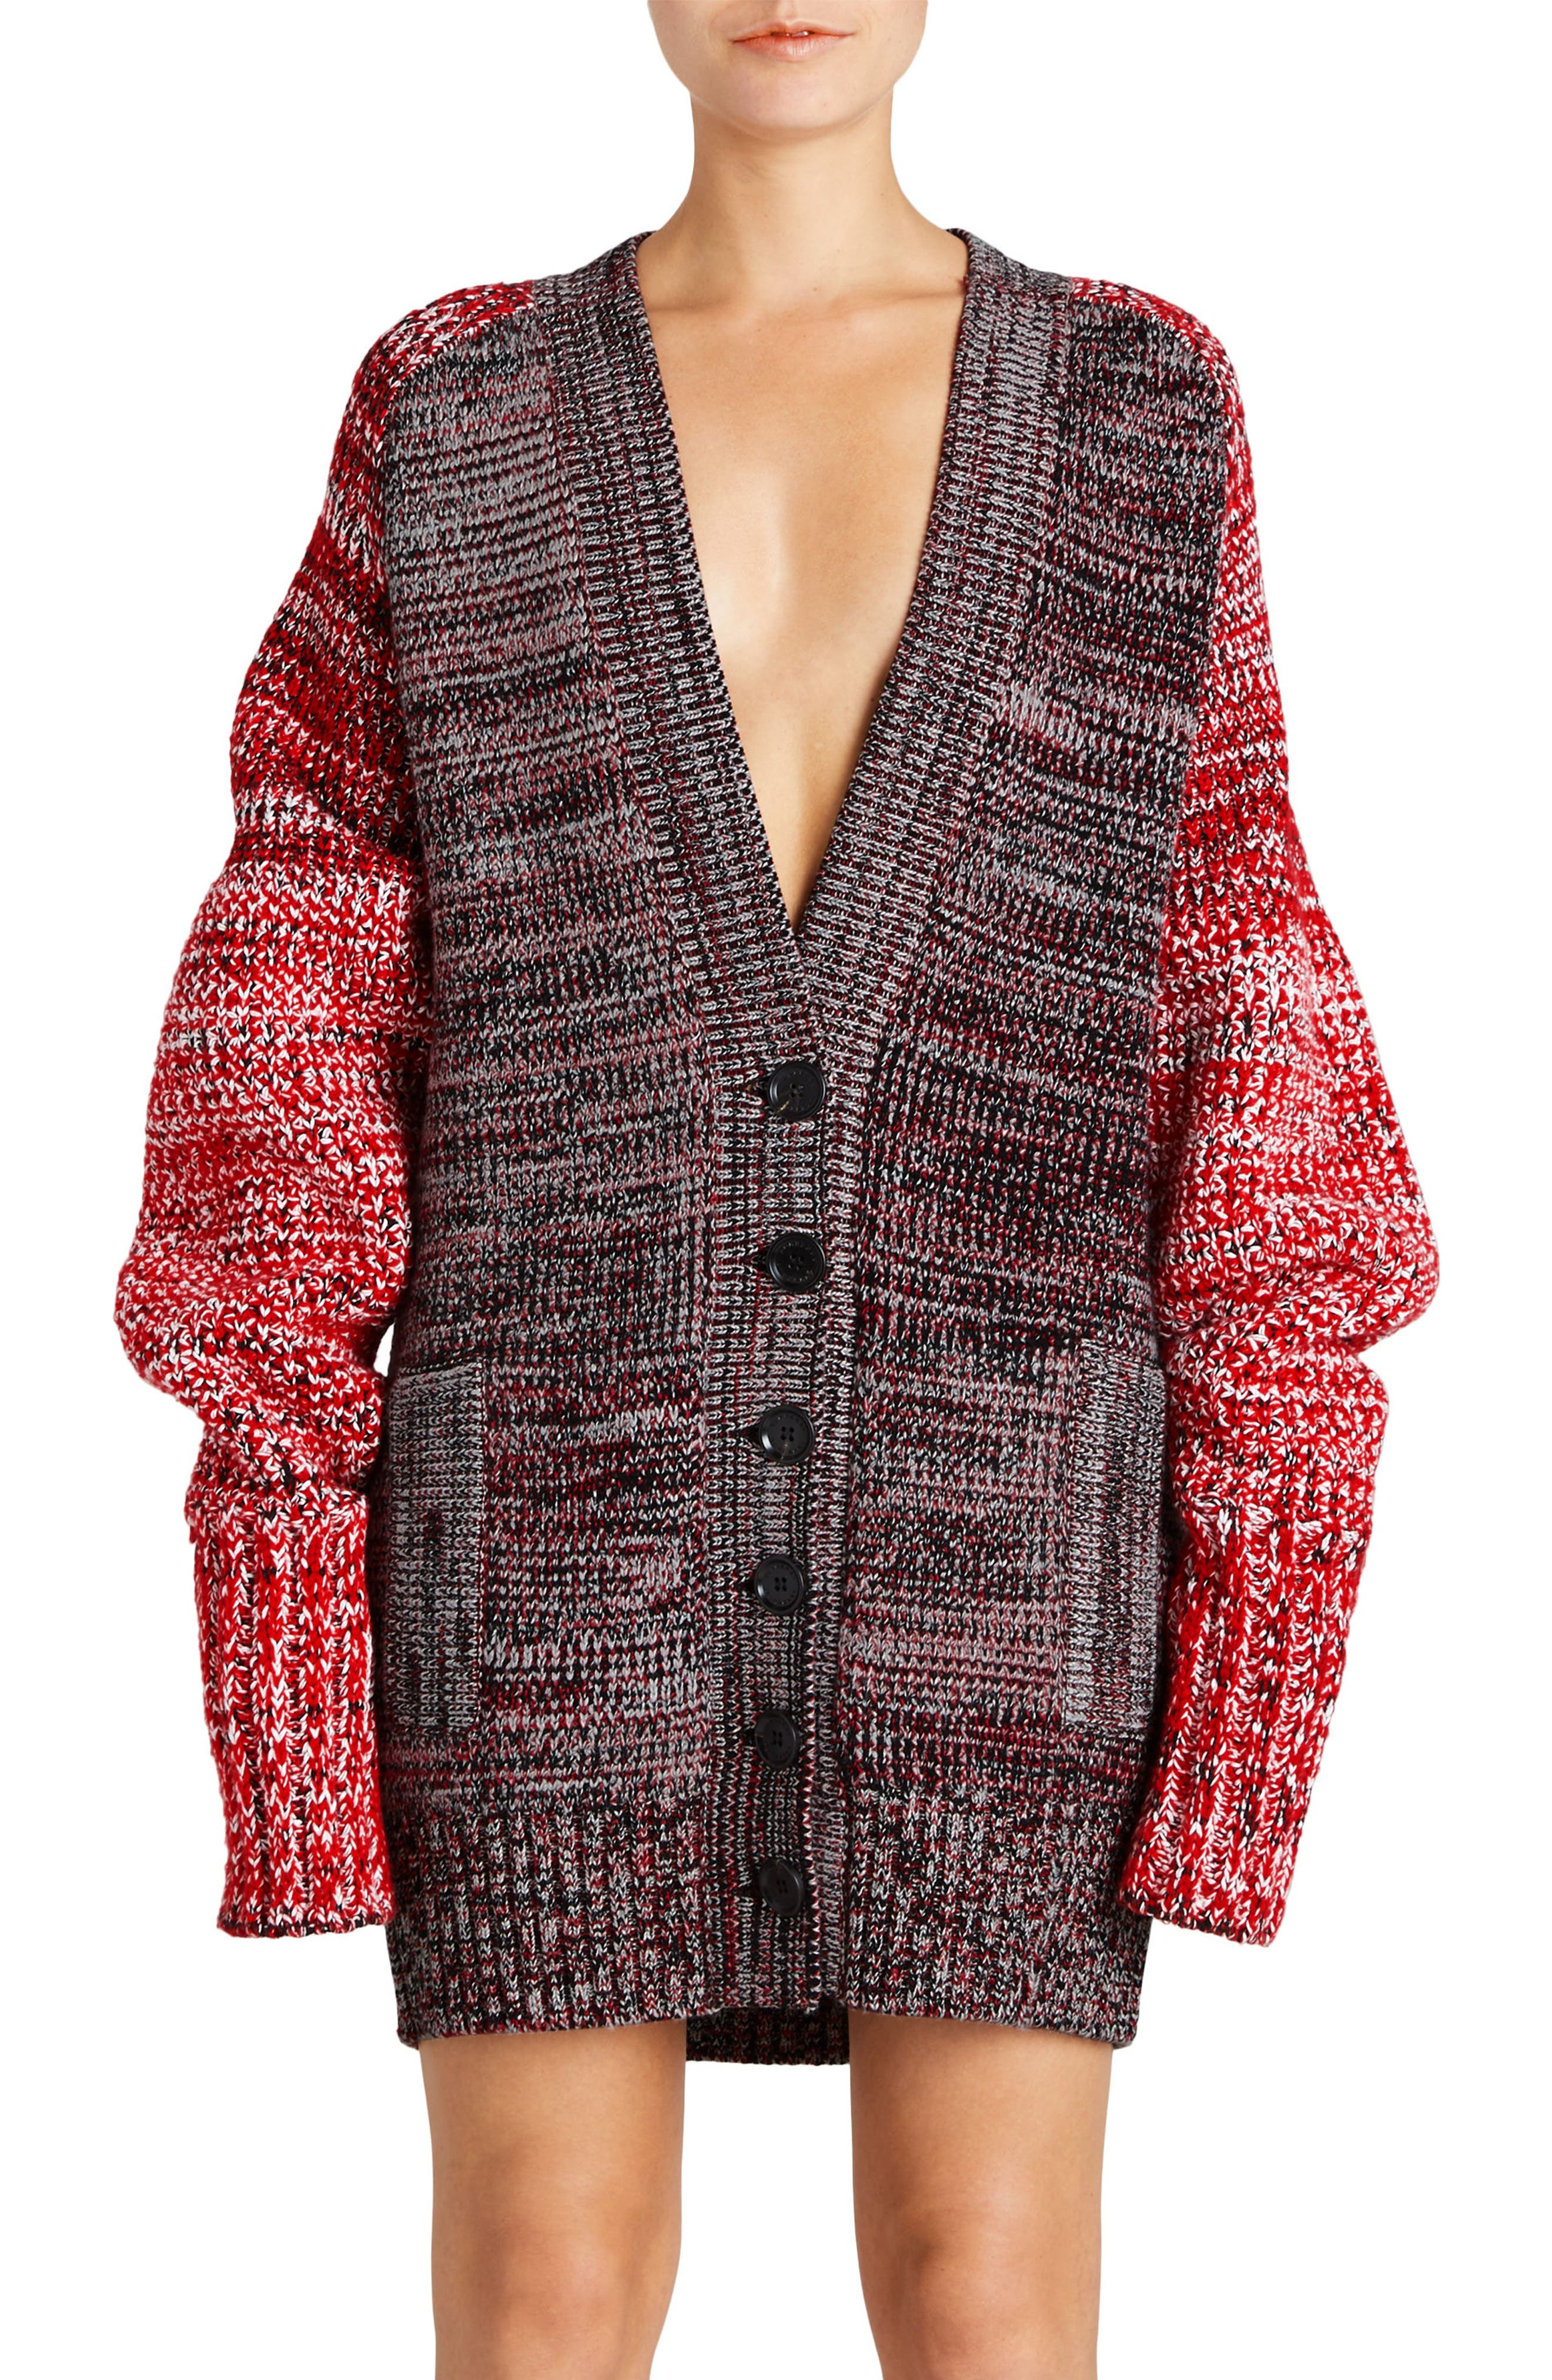 Burberry Cashmere, Cotton & Wool Blend Oversized Cardigan